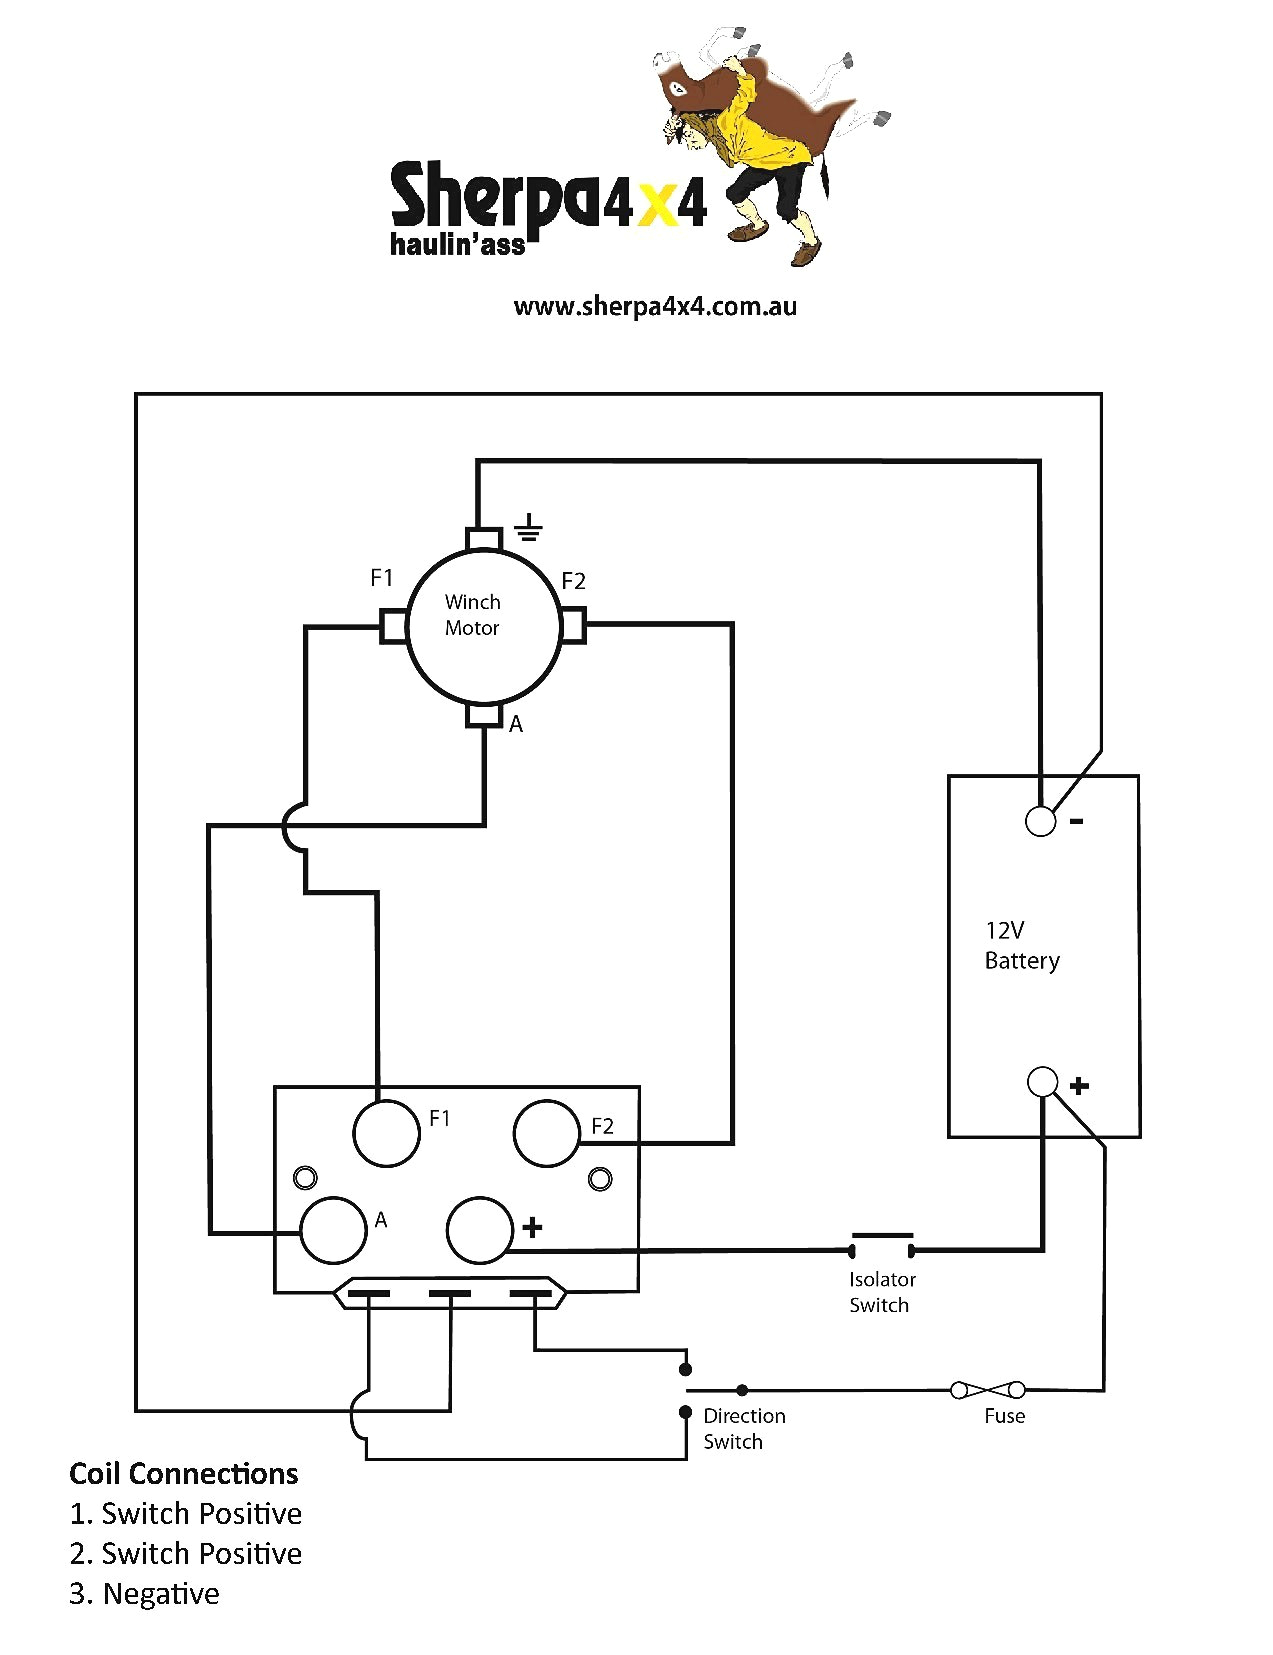 chicago electric winch wiring diagram sample badland winch wiring diagram badland winches wiring setup